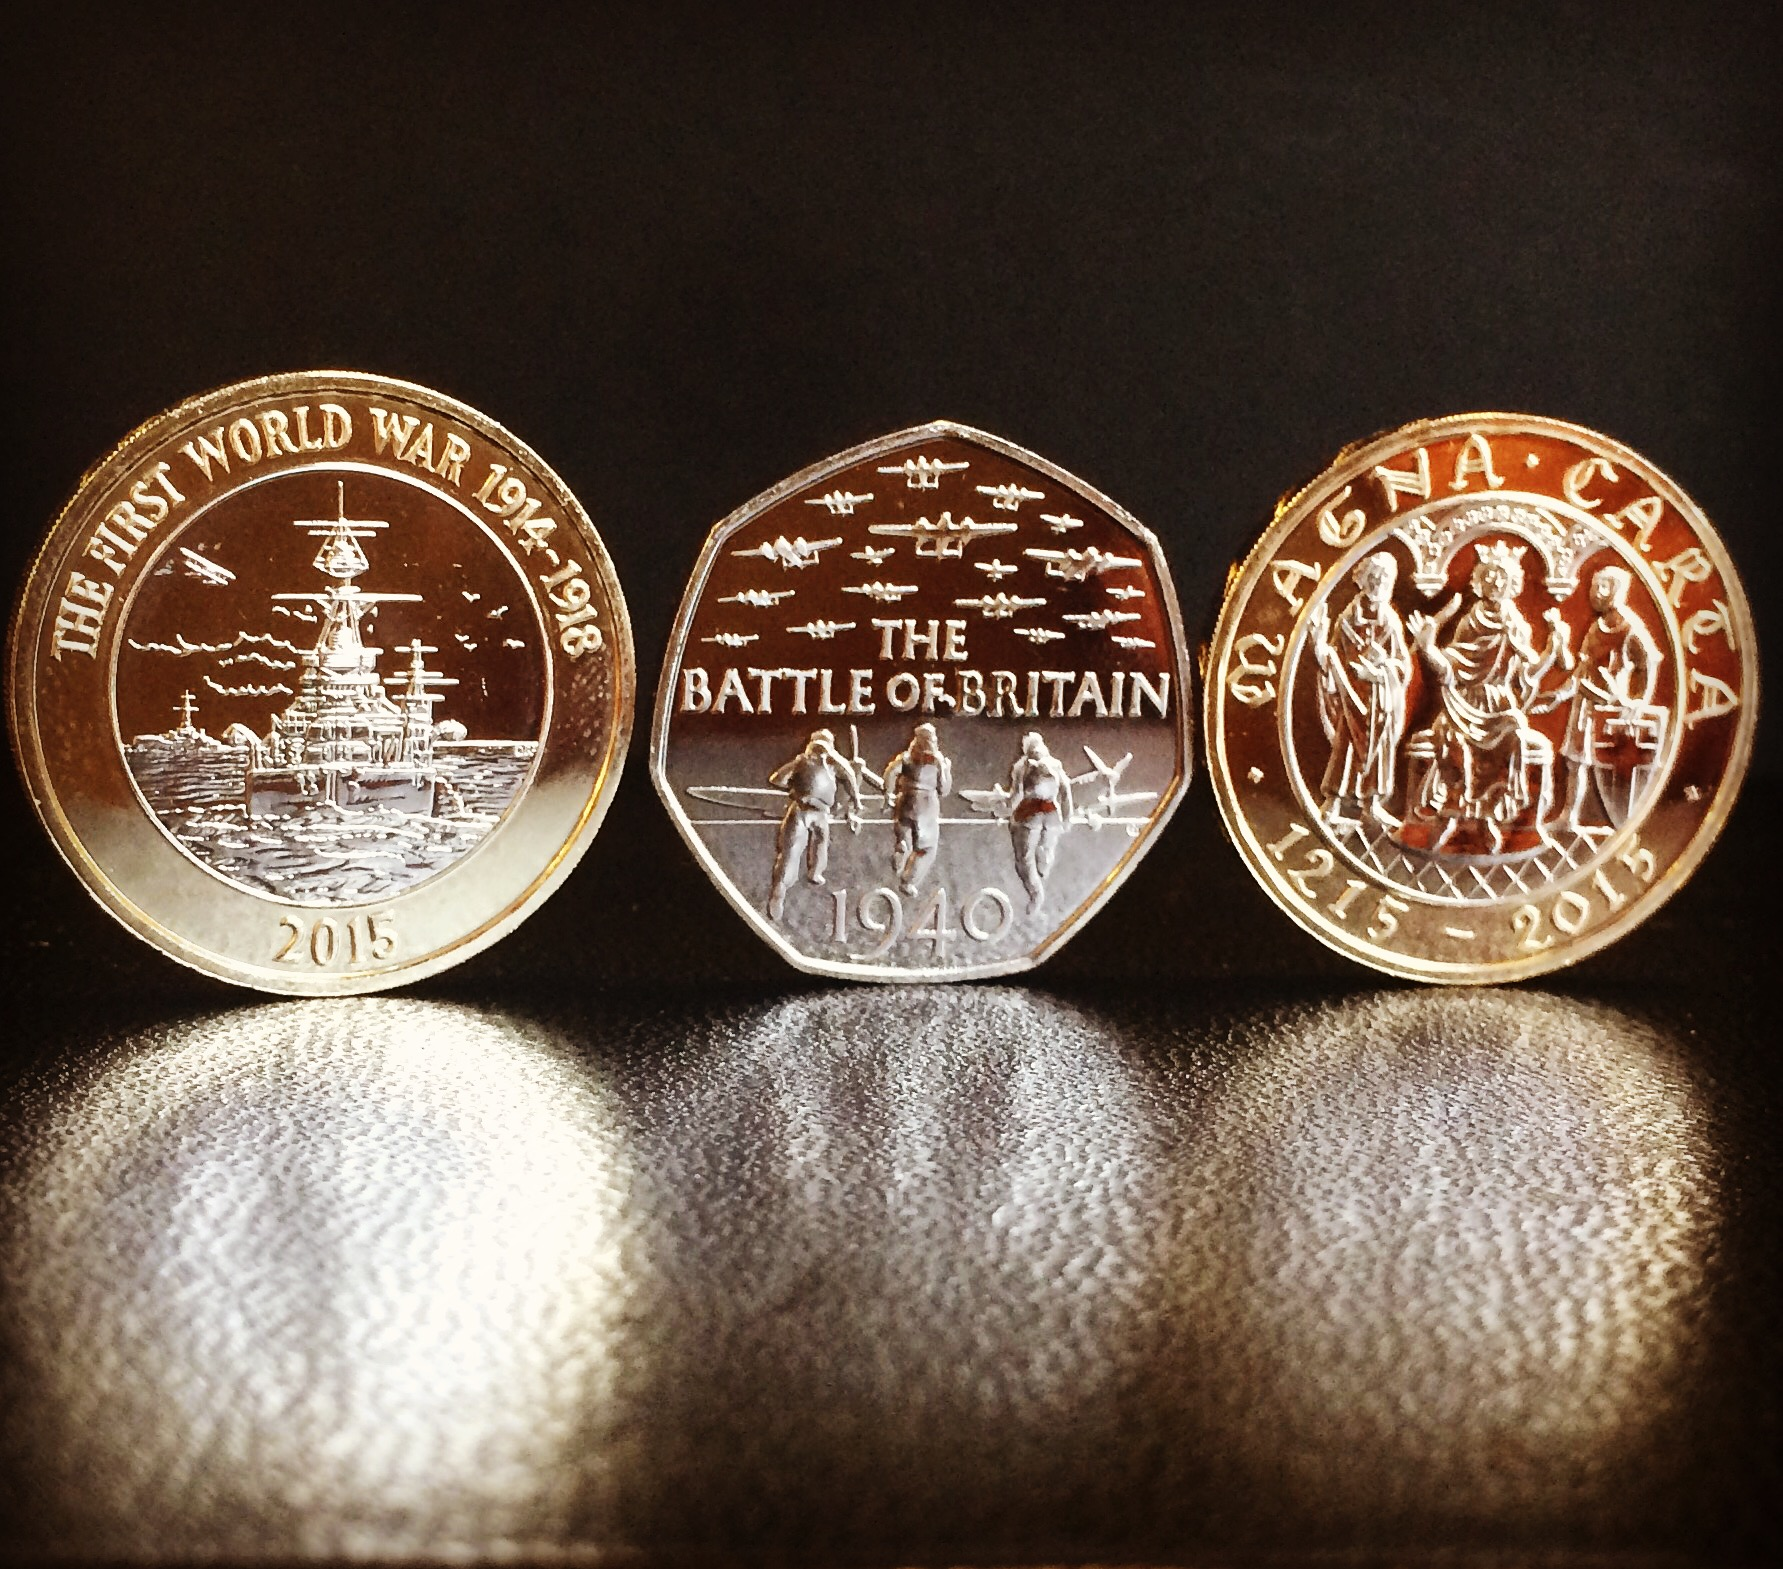 Where are the 2015 commemorative coins?